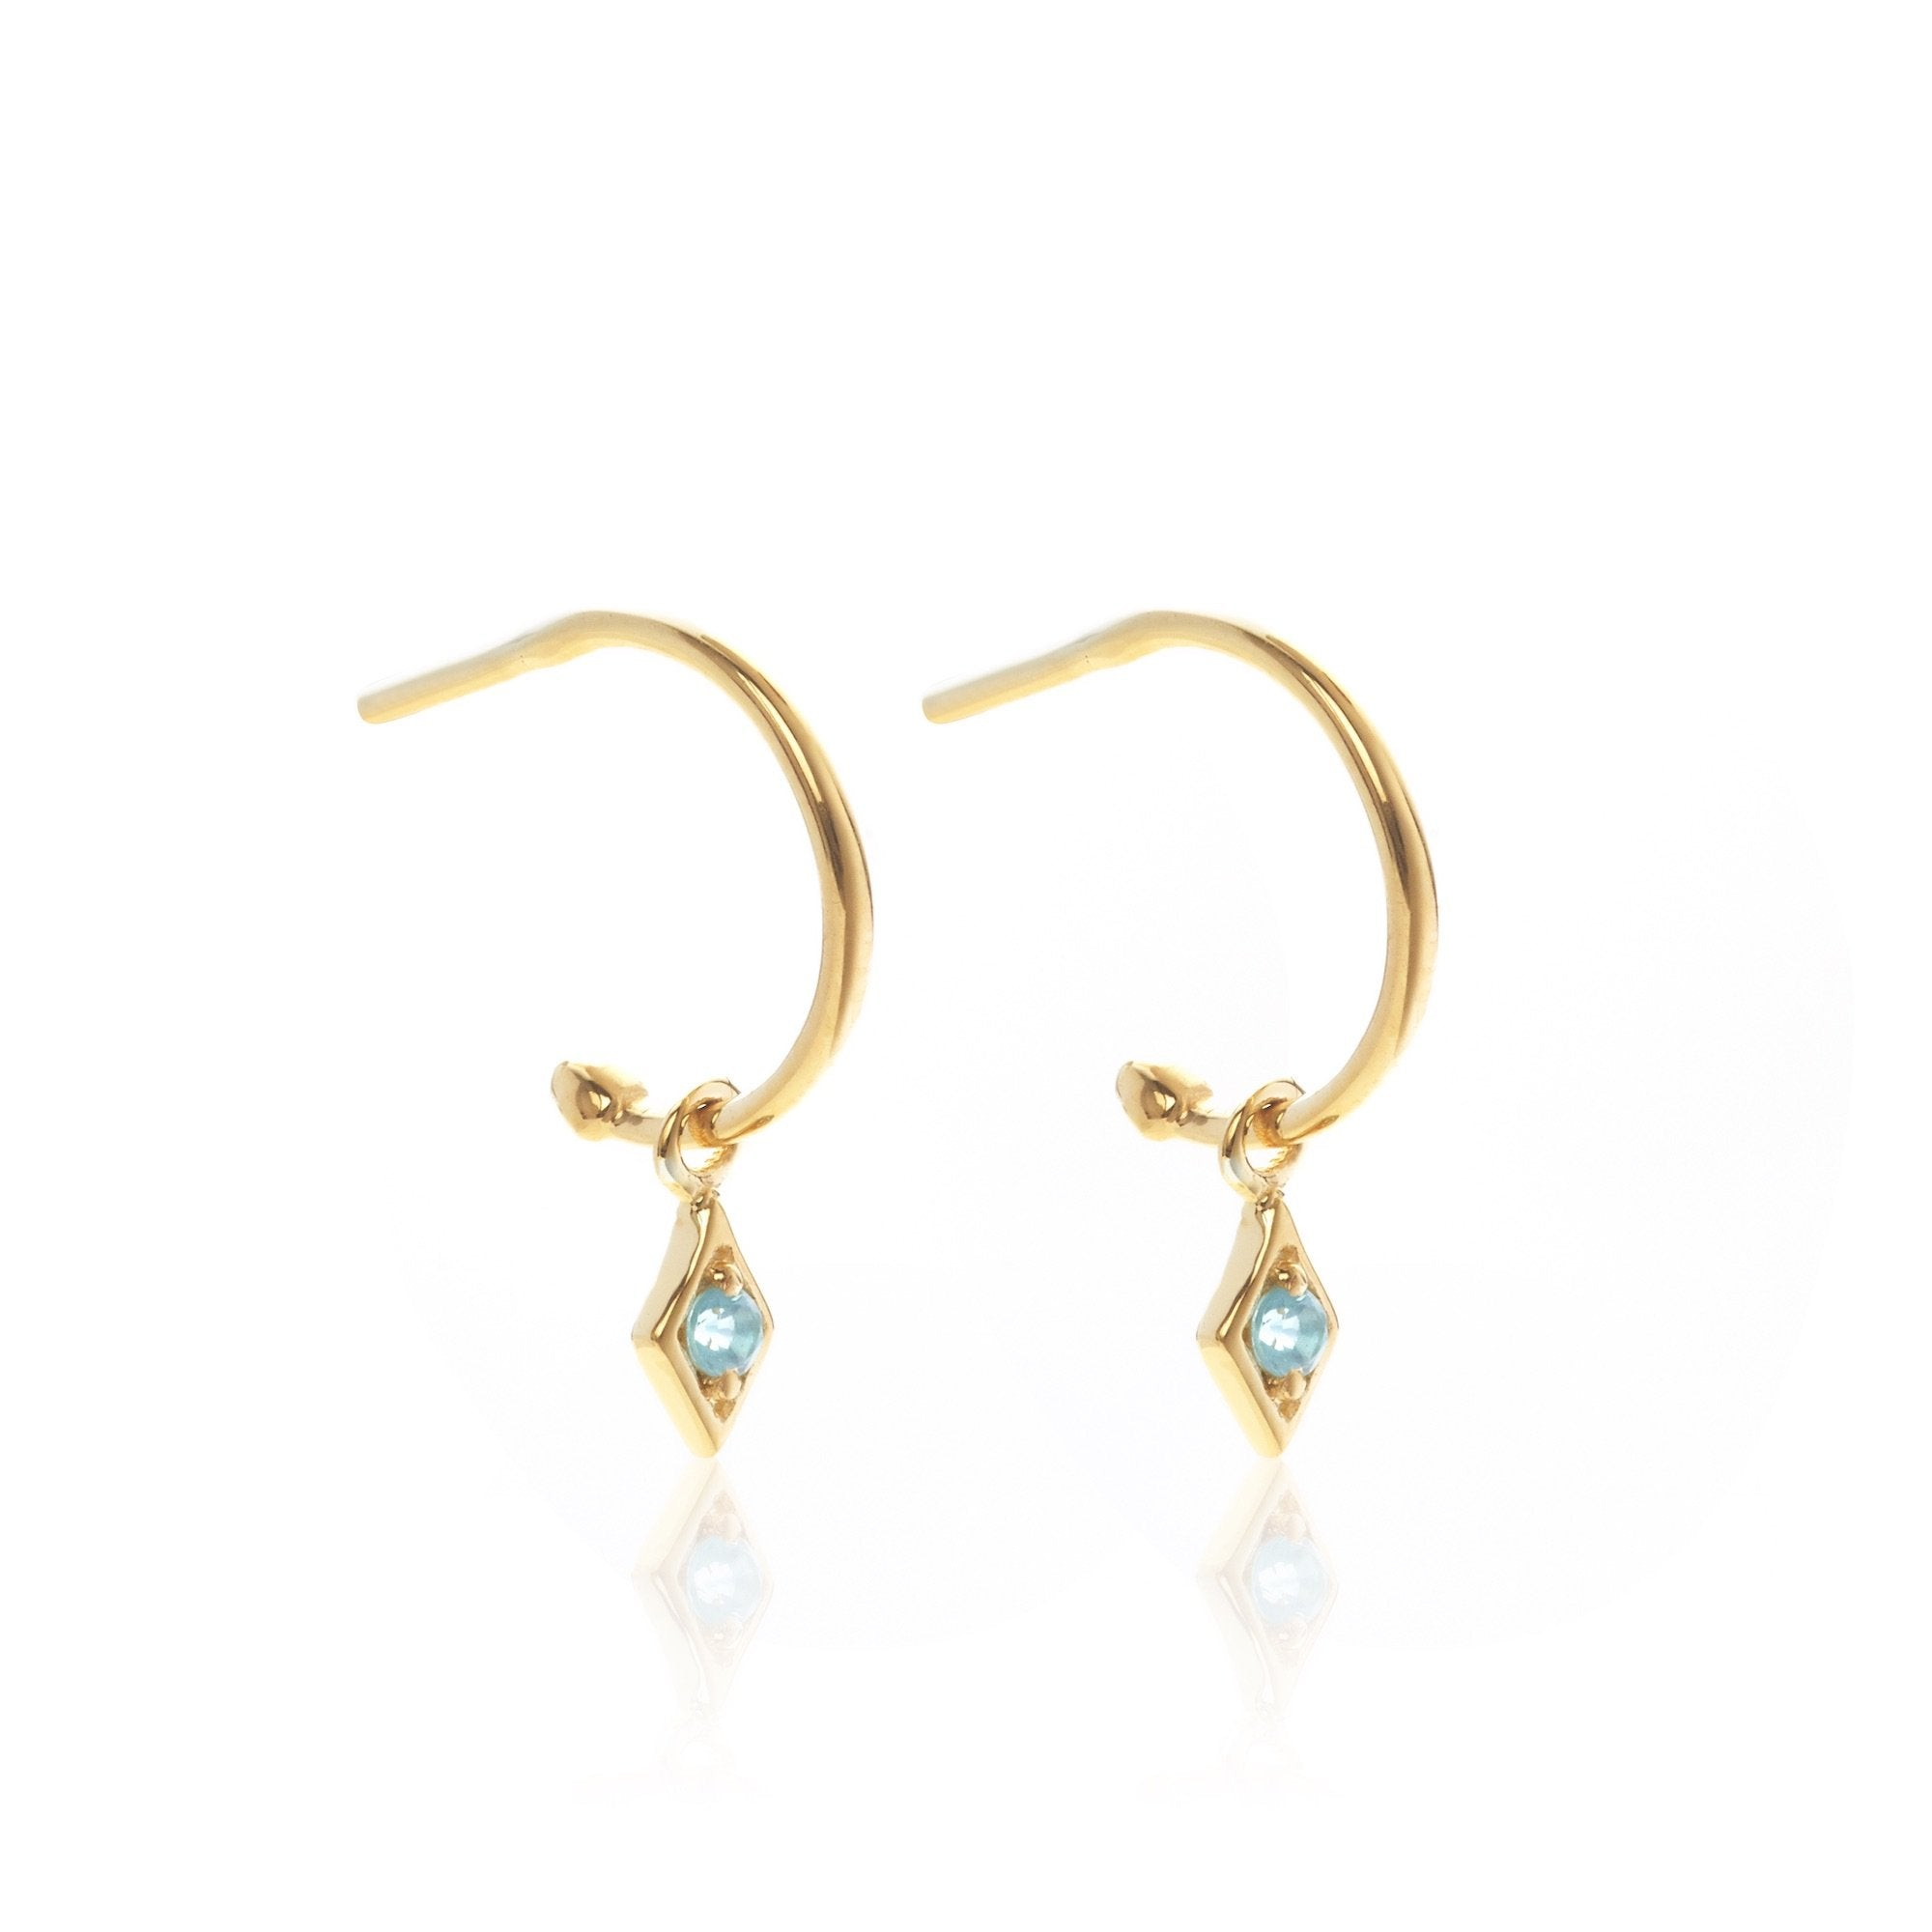 Silk & Steel Jewellery Superfine Keepsake Gold and Blue Topaz hoop earrings